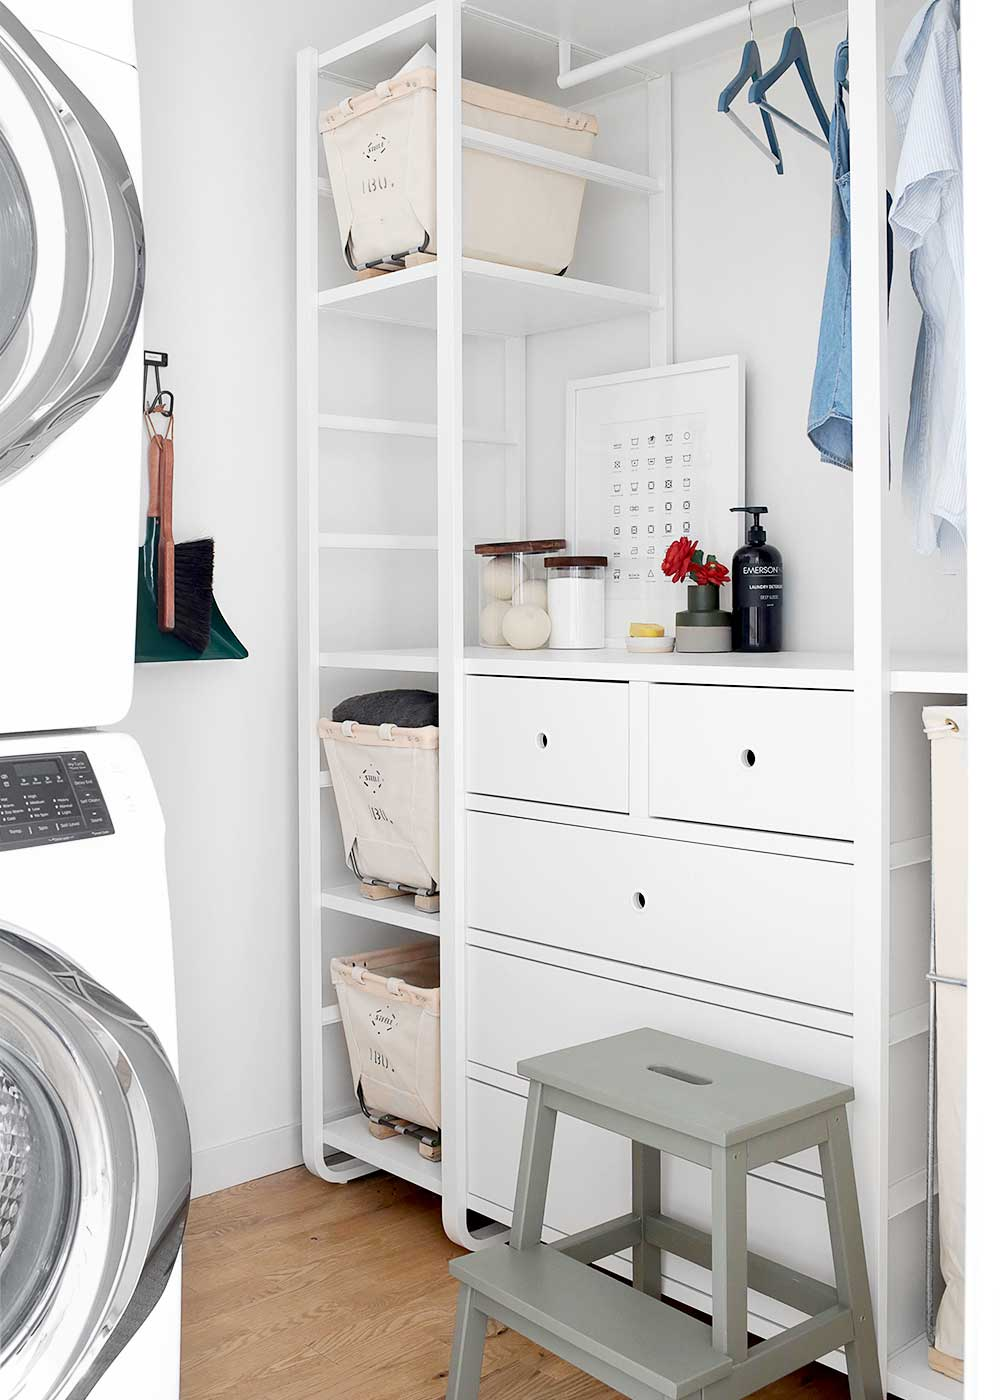 Weekend Laundry Room Makeover with Elvarli from Ikea